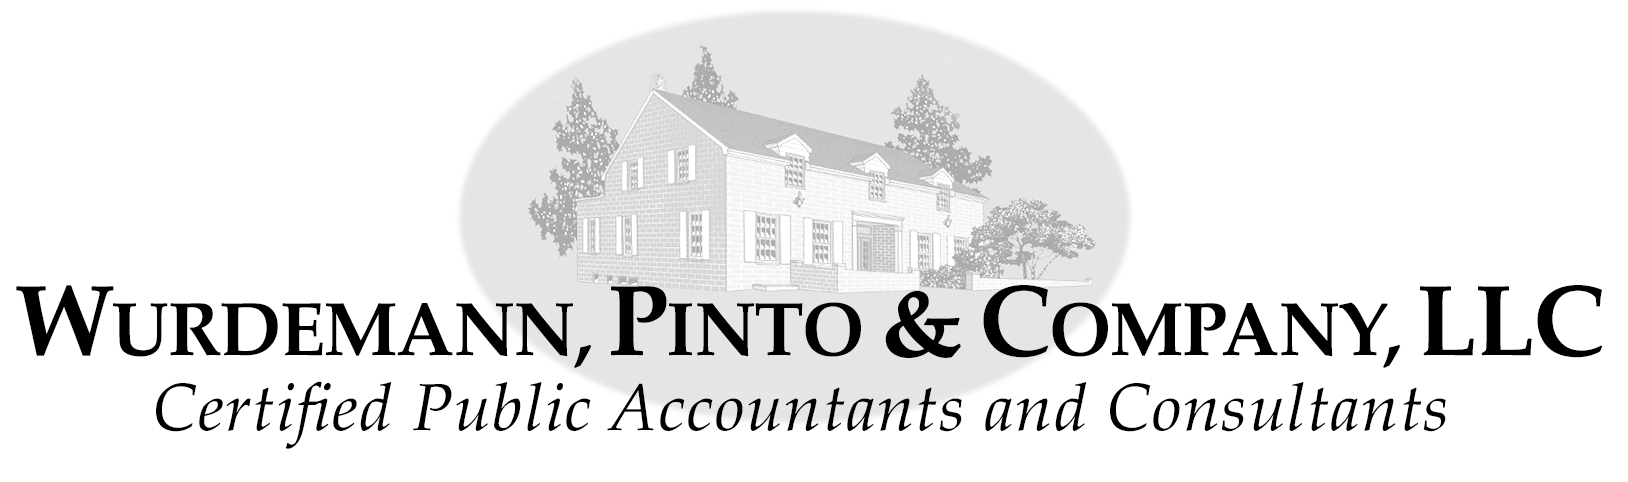 Hackensack, NJ Accounting Firm | IRS Tax Forms and Publications | Wurdemann, Pinto & Co. LLC